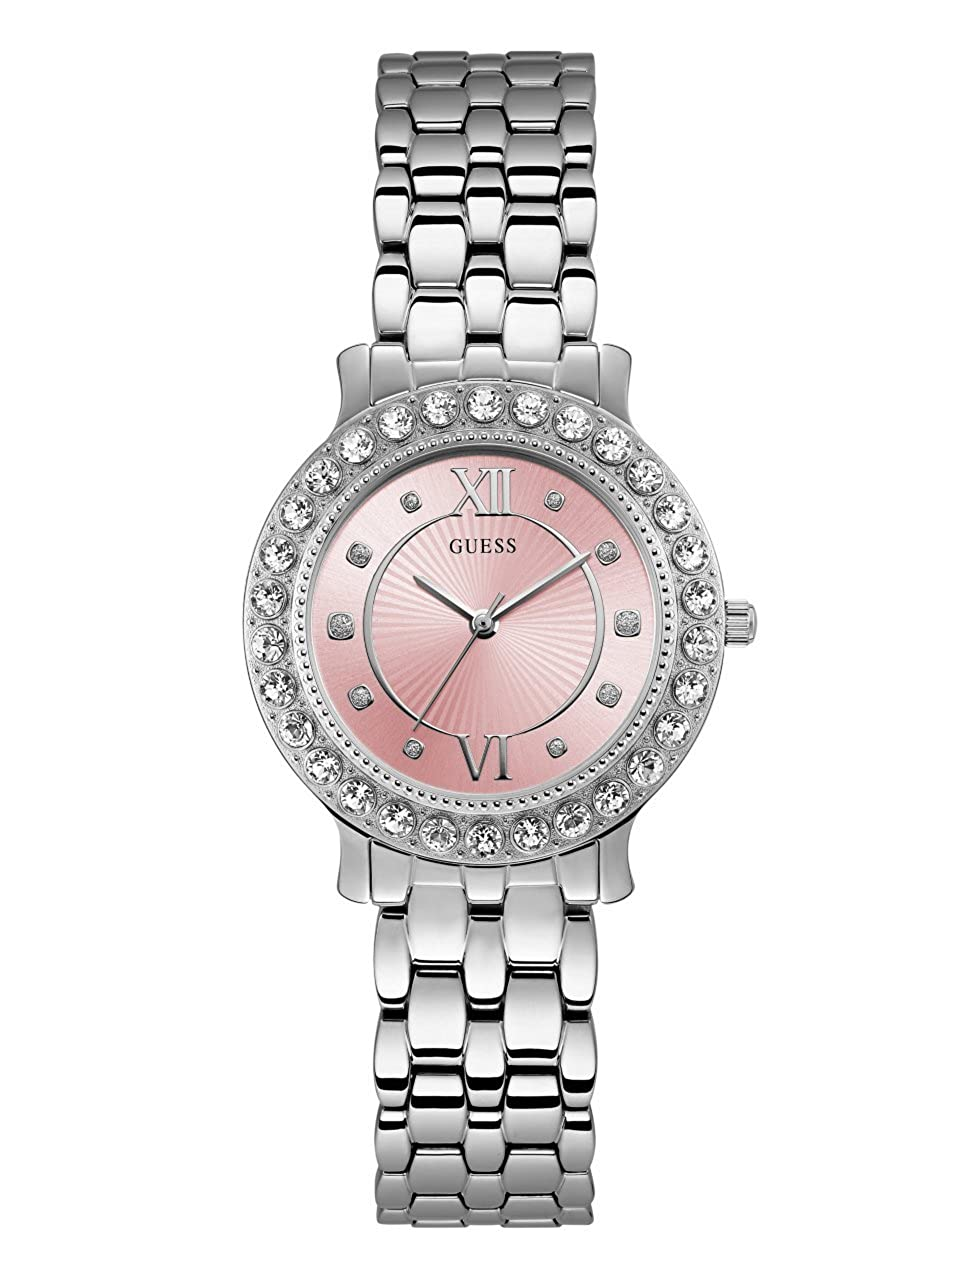 7e0ea592391 GUESS Women's Stainless Steel Crystal Watch